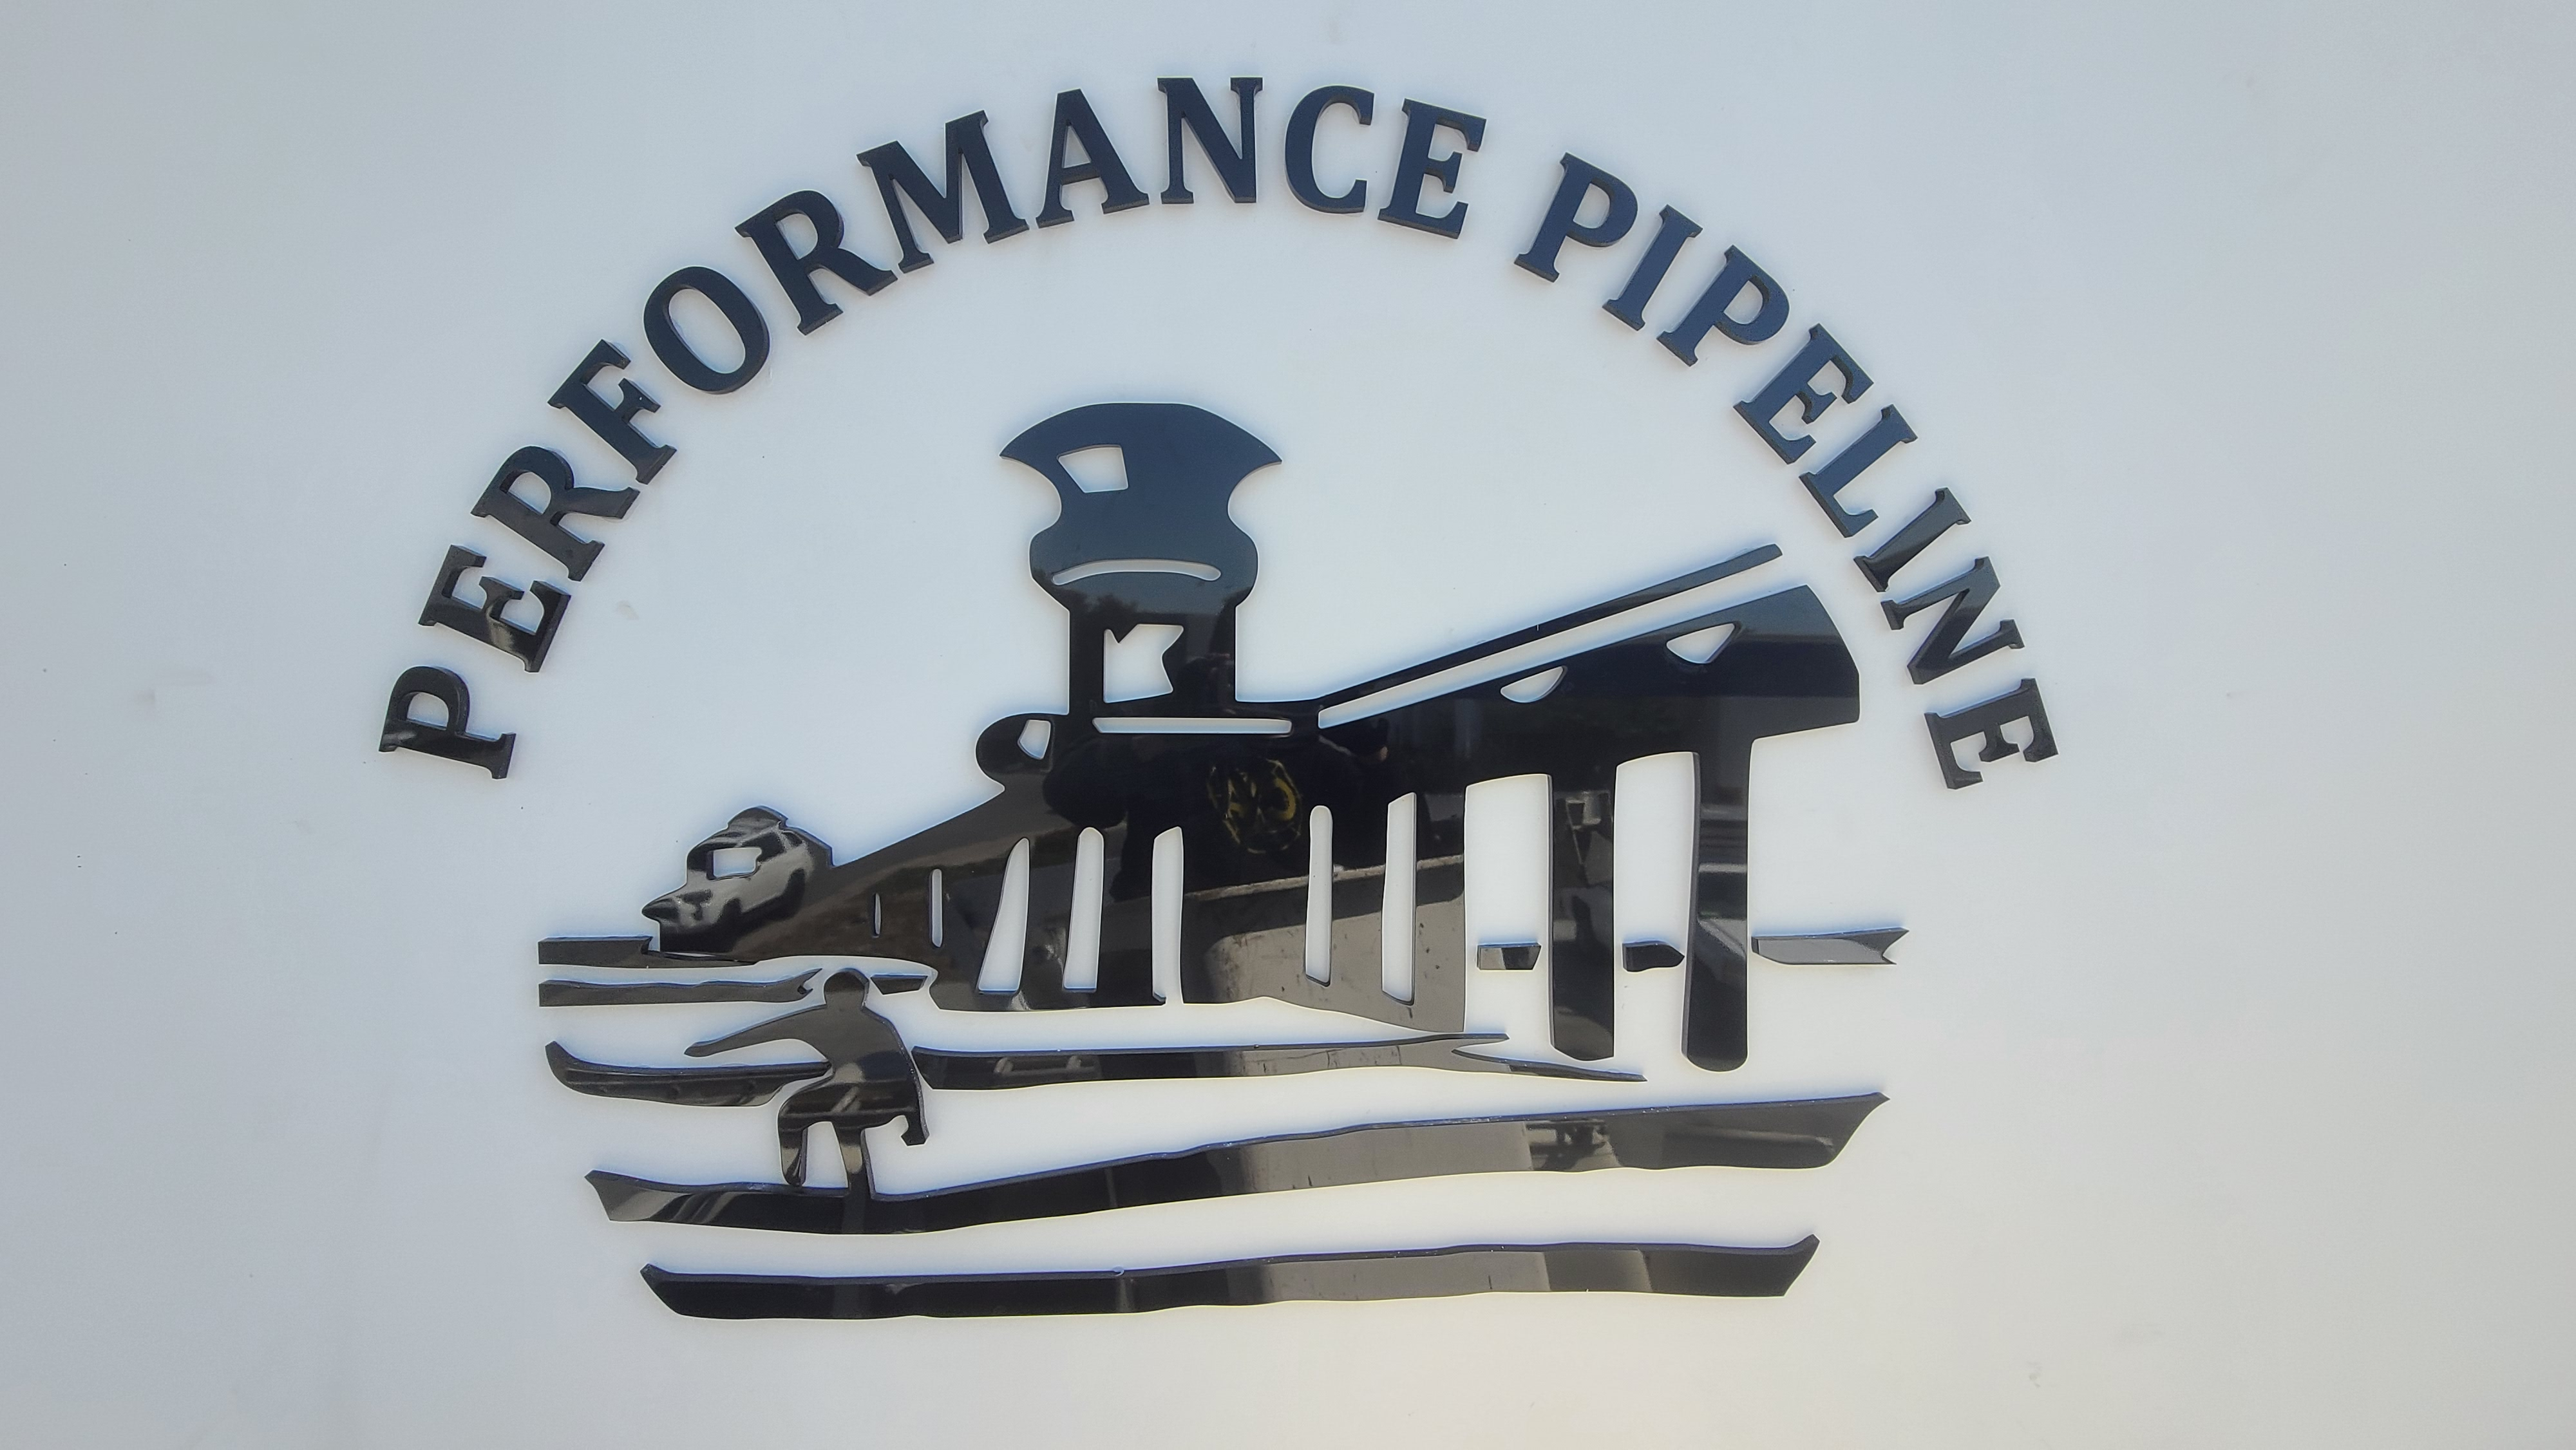 A closer look of the company logo and address numbers signs we made for Performance Pipeline in Huntington.